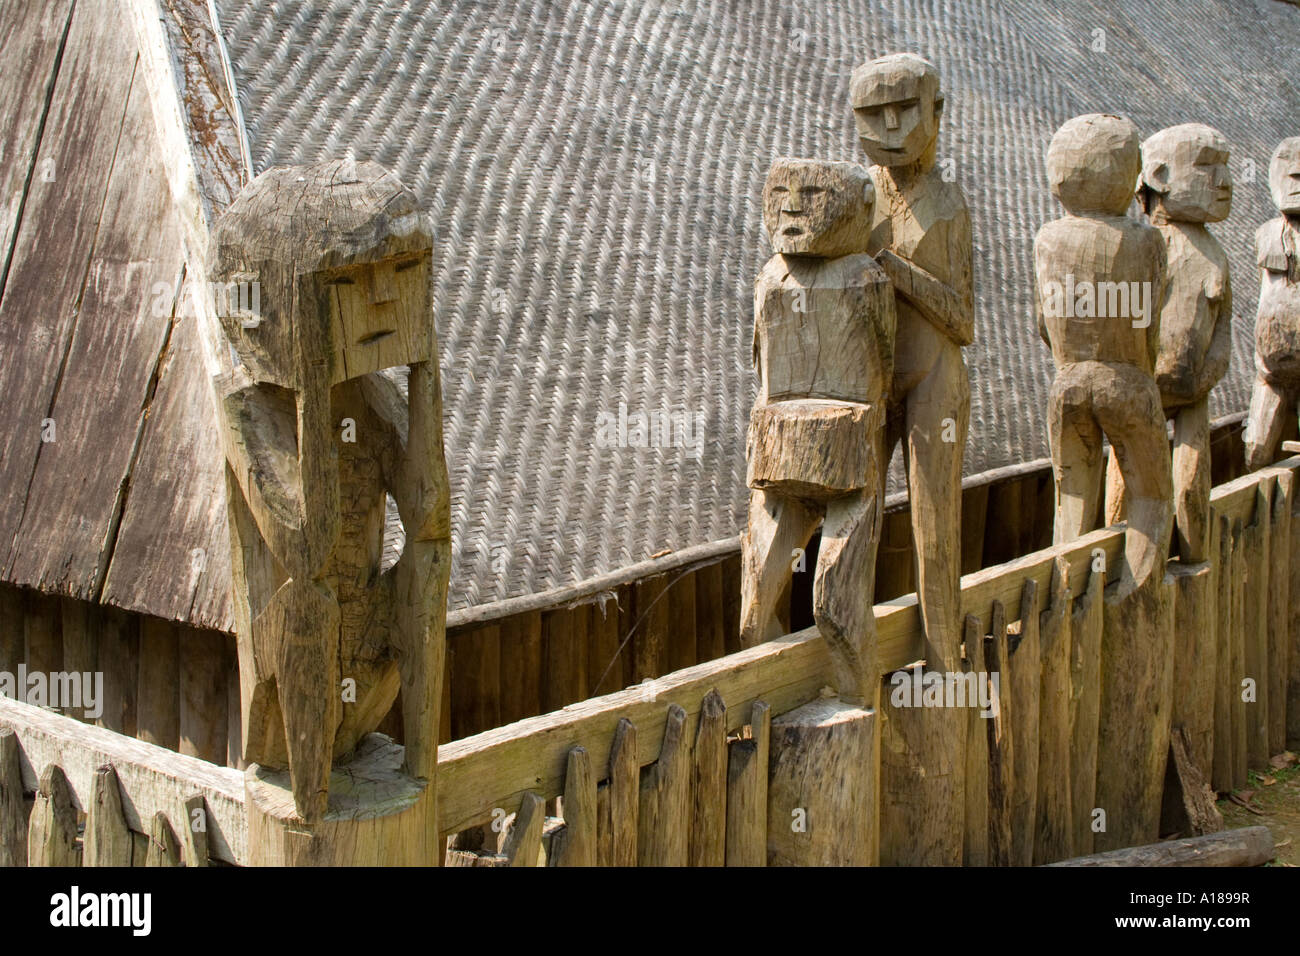 2007 Carved Wooden Statues from Ethnic Minority Tribes Vietnam Museum of Ethnology Hanoi Vietnam - Stock Image